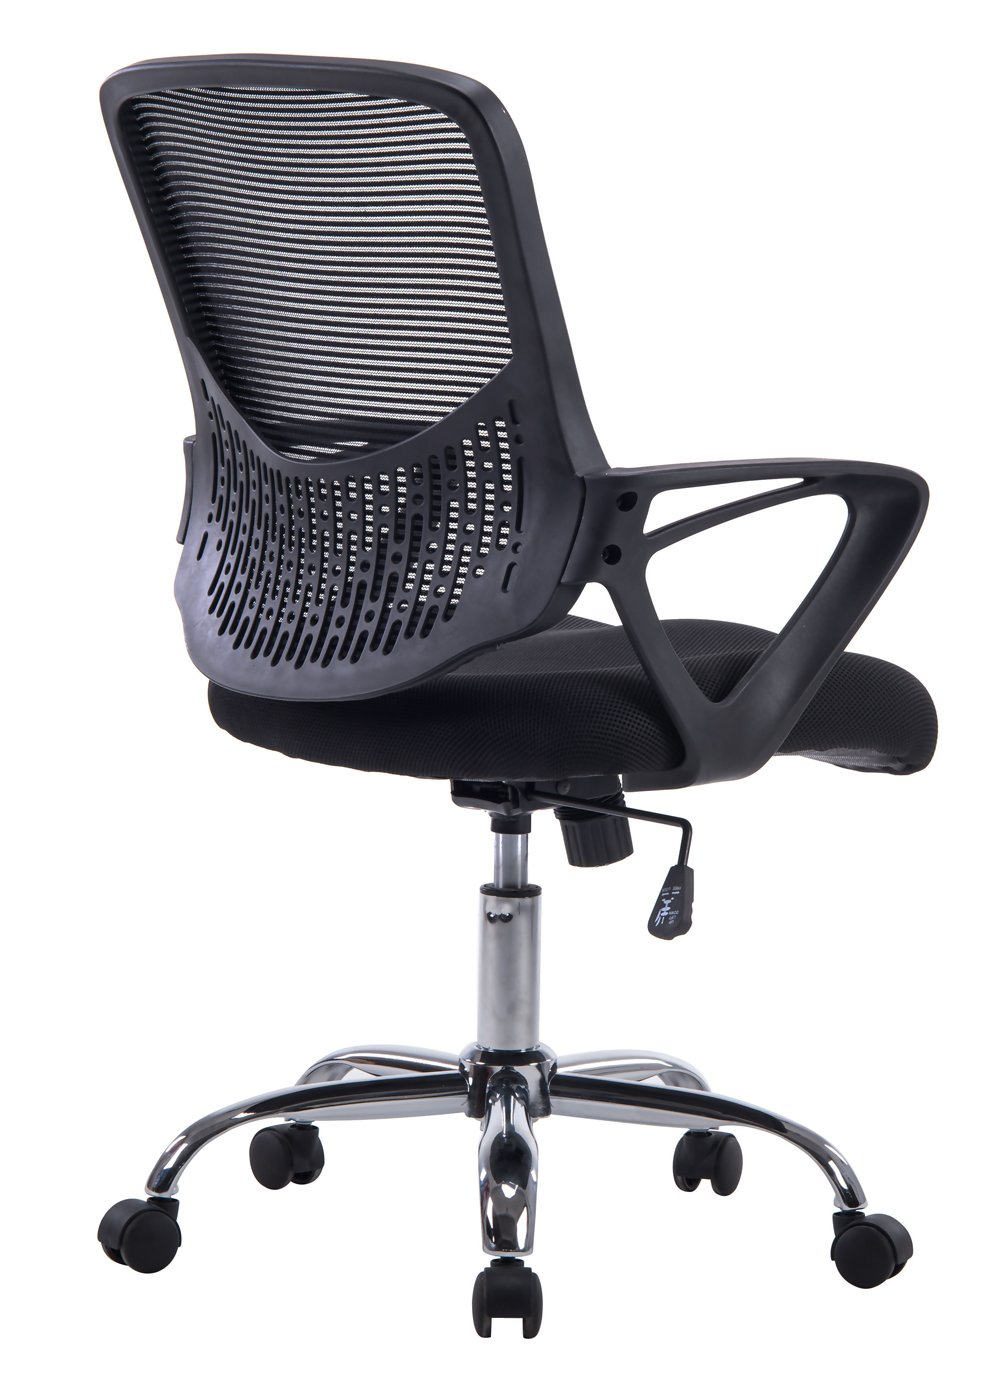 Angel Mid-Back Mesh Task Chair with Arms, Swivel & Tilt, Ergonomic Design, Great for Computer Home Office Chair Desk Basic (Black) Angel Canada